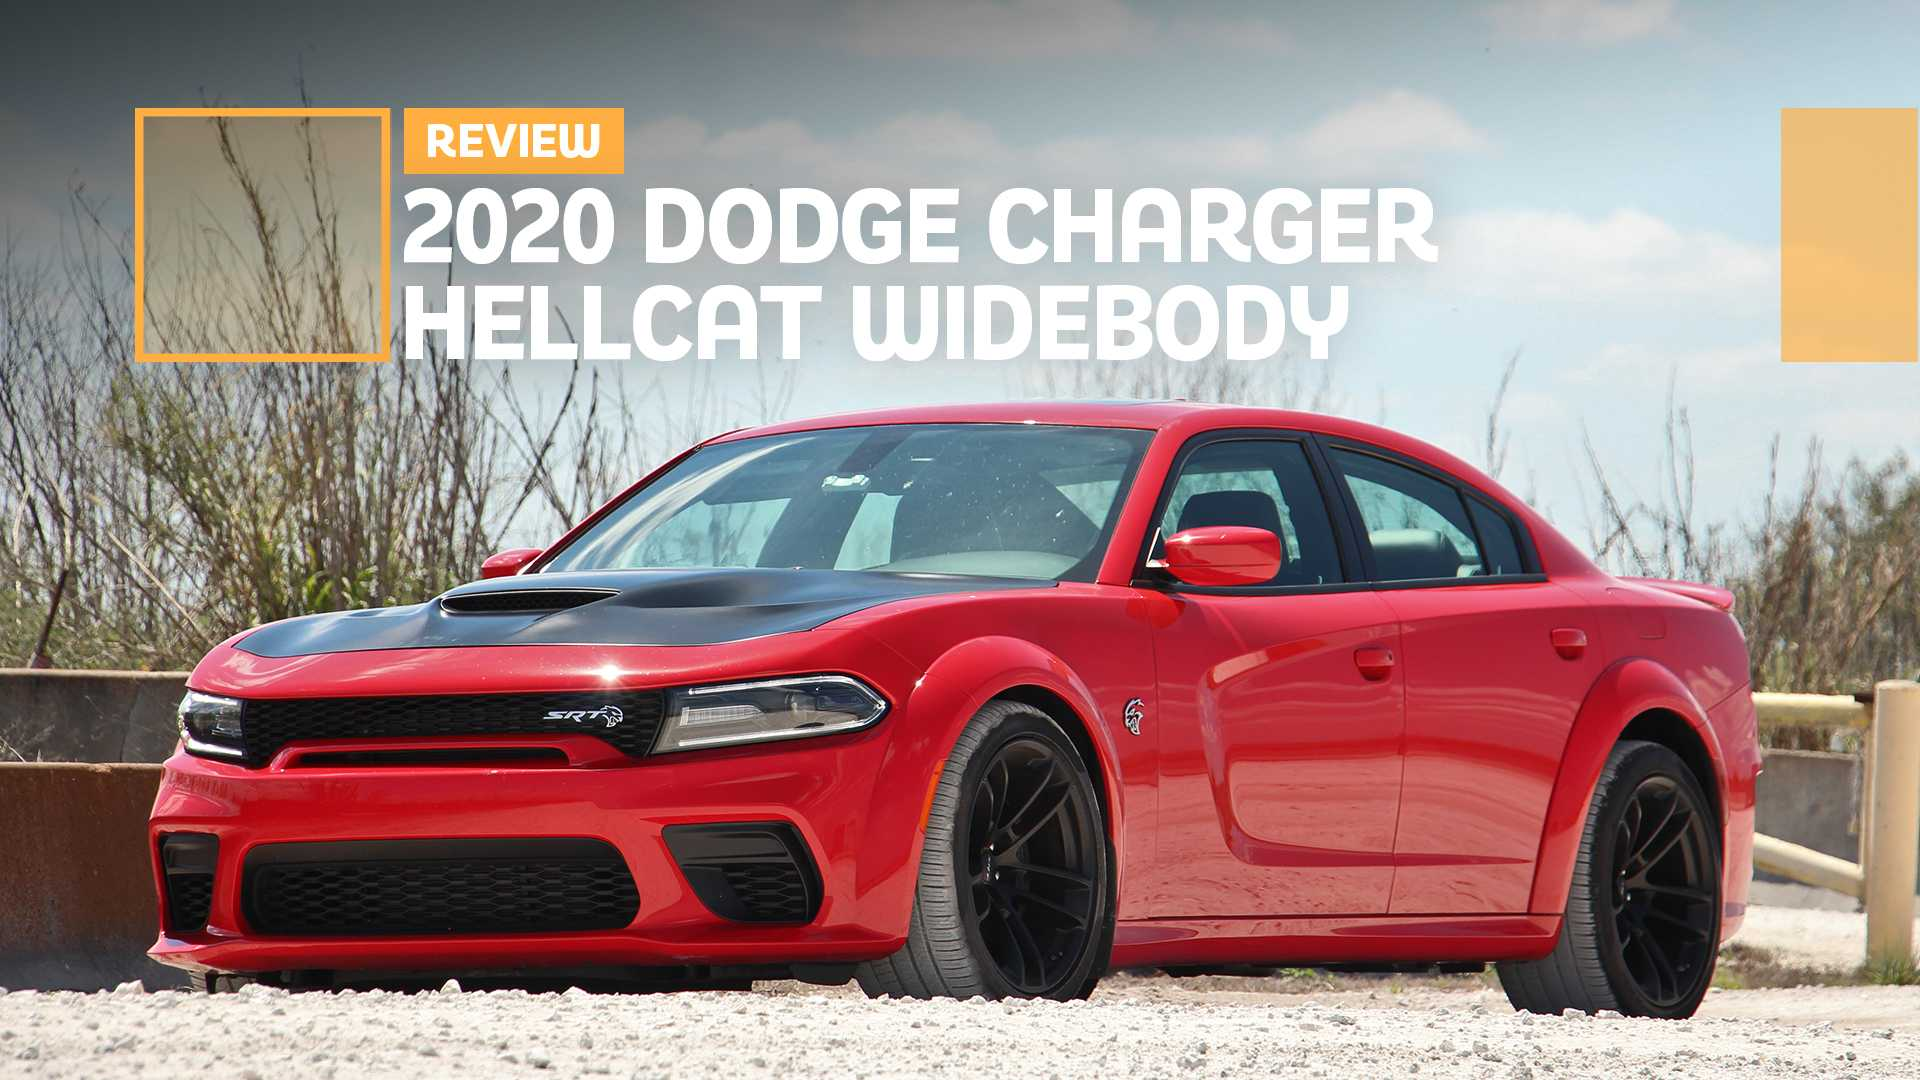 2020 Dodge Charger Hellcat Widebody Review More Hip More Grip